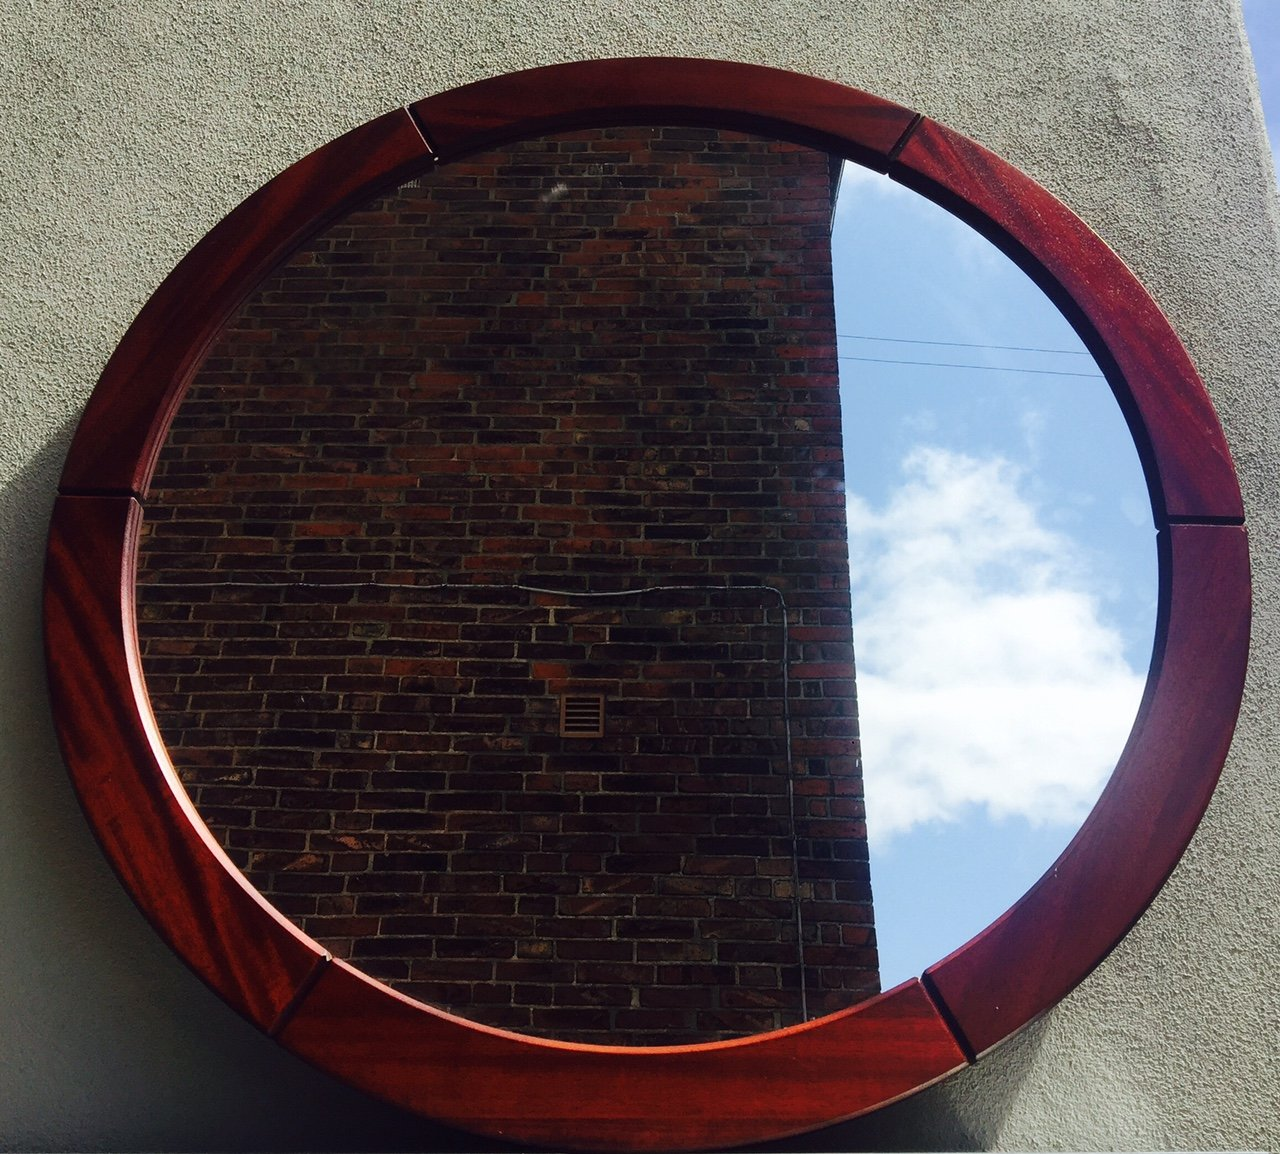 runder d nischer teak wand spiegel von john kristoffersen son f r korinth 1970er bei pamono. Black Bedroom Furniture Sets. Home Design Ideas